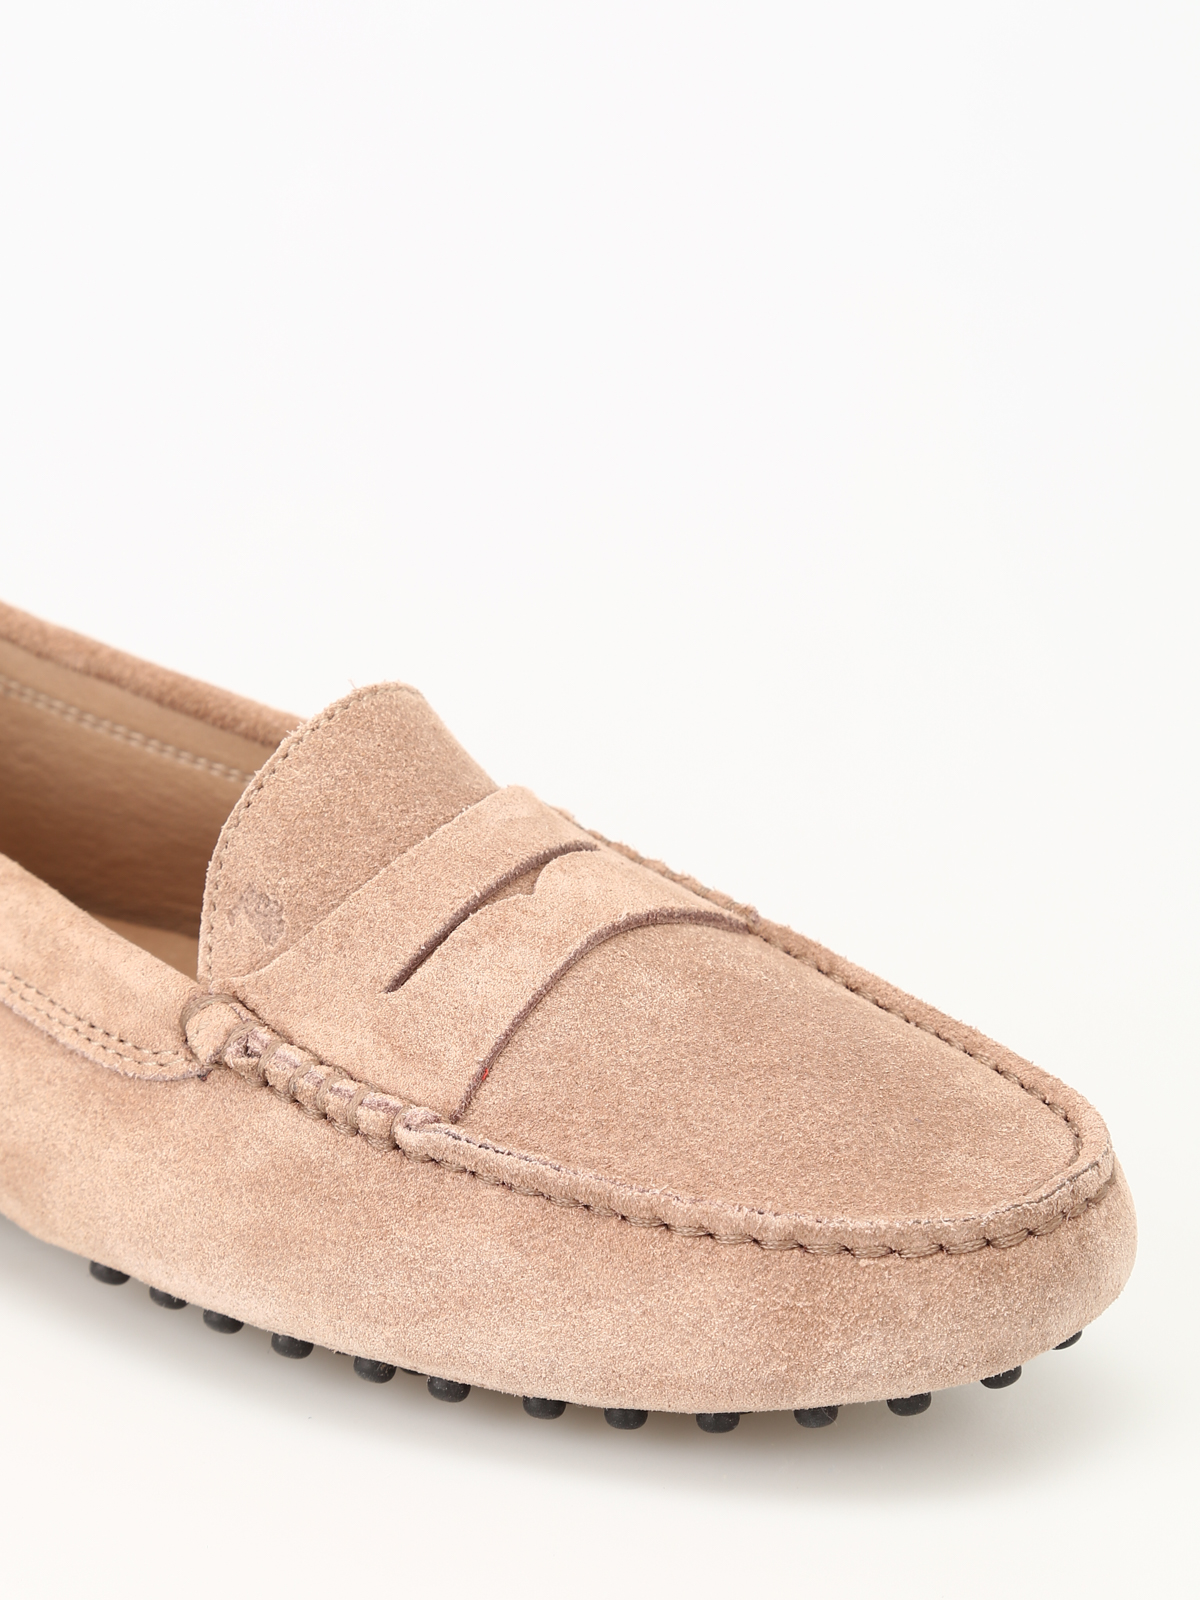 Gommino ginger suede driving shoes